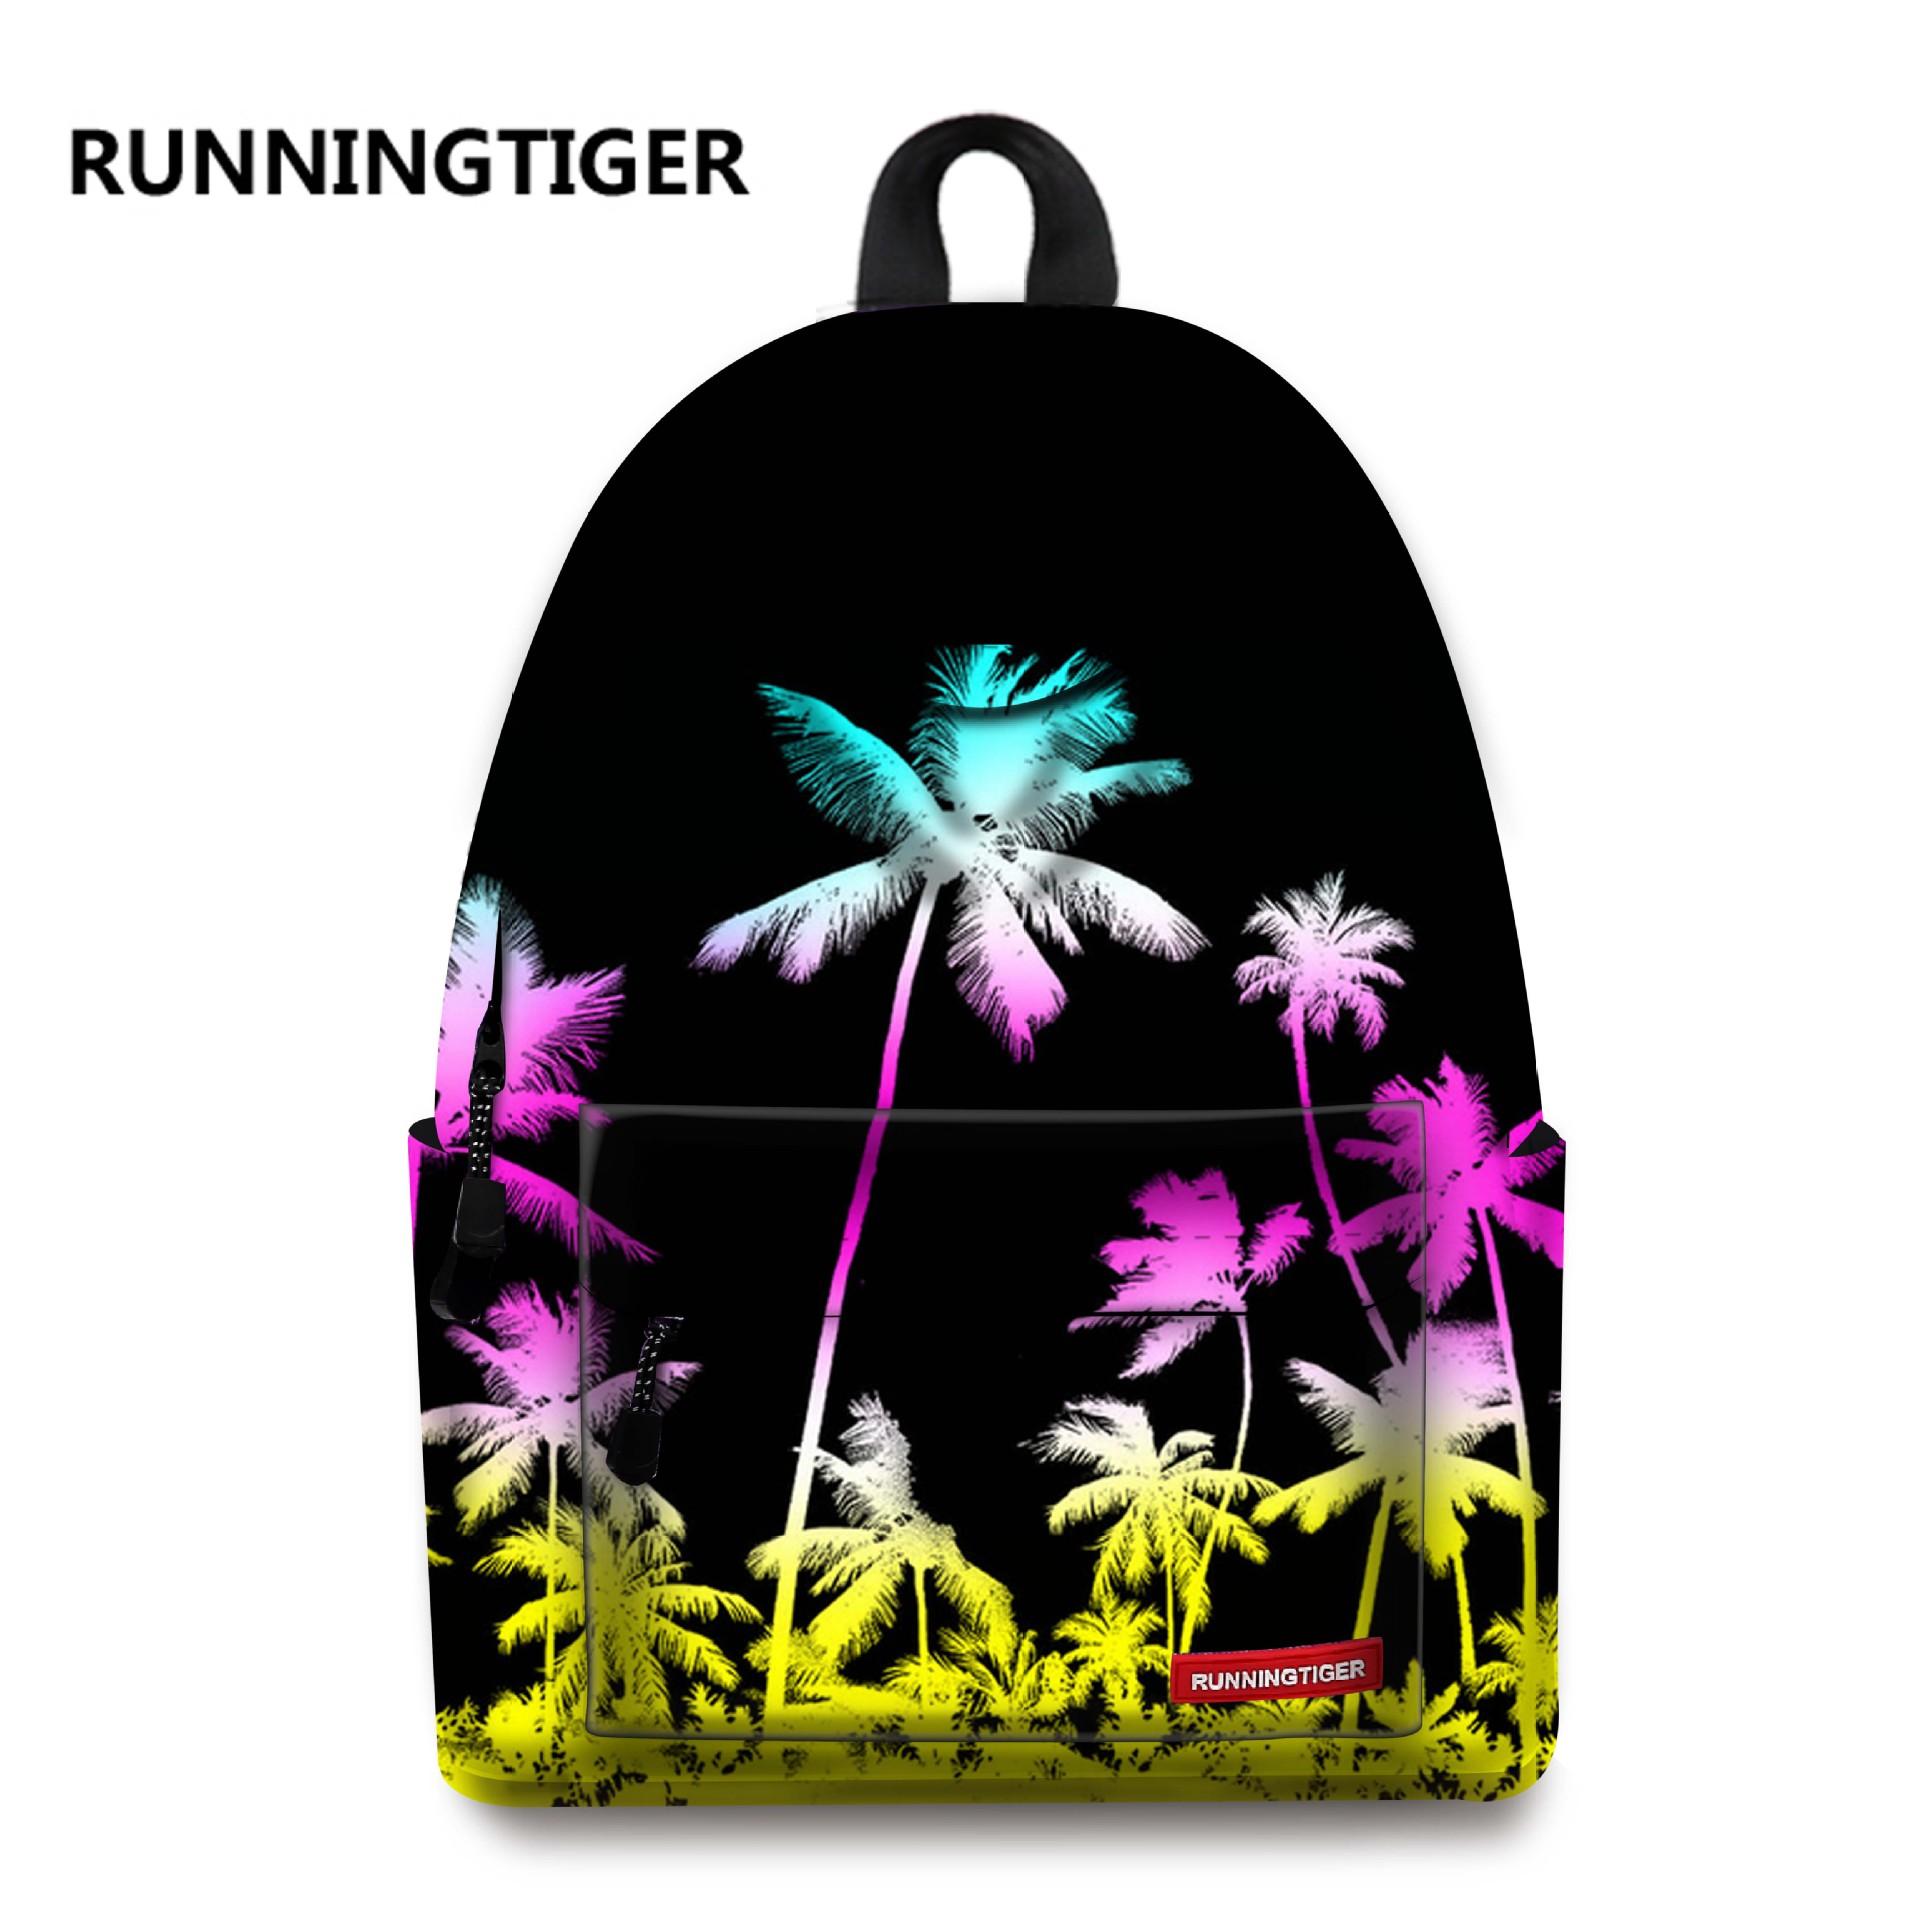 Teenage Backpacks For Girls 2017 Brand New School Bags Student Casual Printing Women Female Travel Satchel Cheap Schoolbag  veevanv new fashion women s backpacks audrey hepburn printing backpacks for teenage boy girls casual bags for fans best gifts